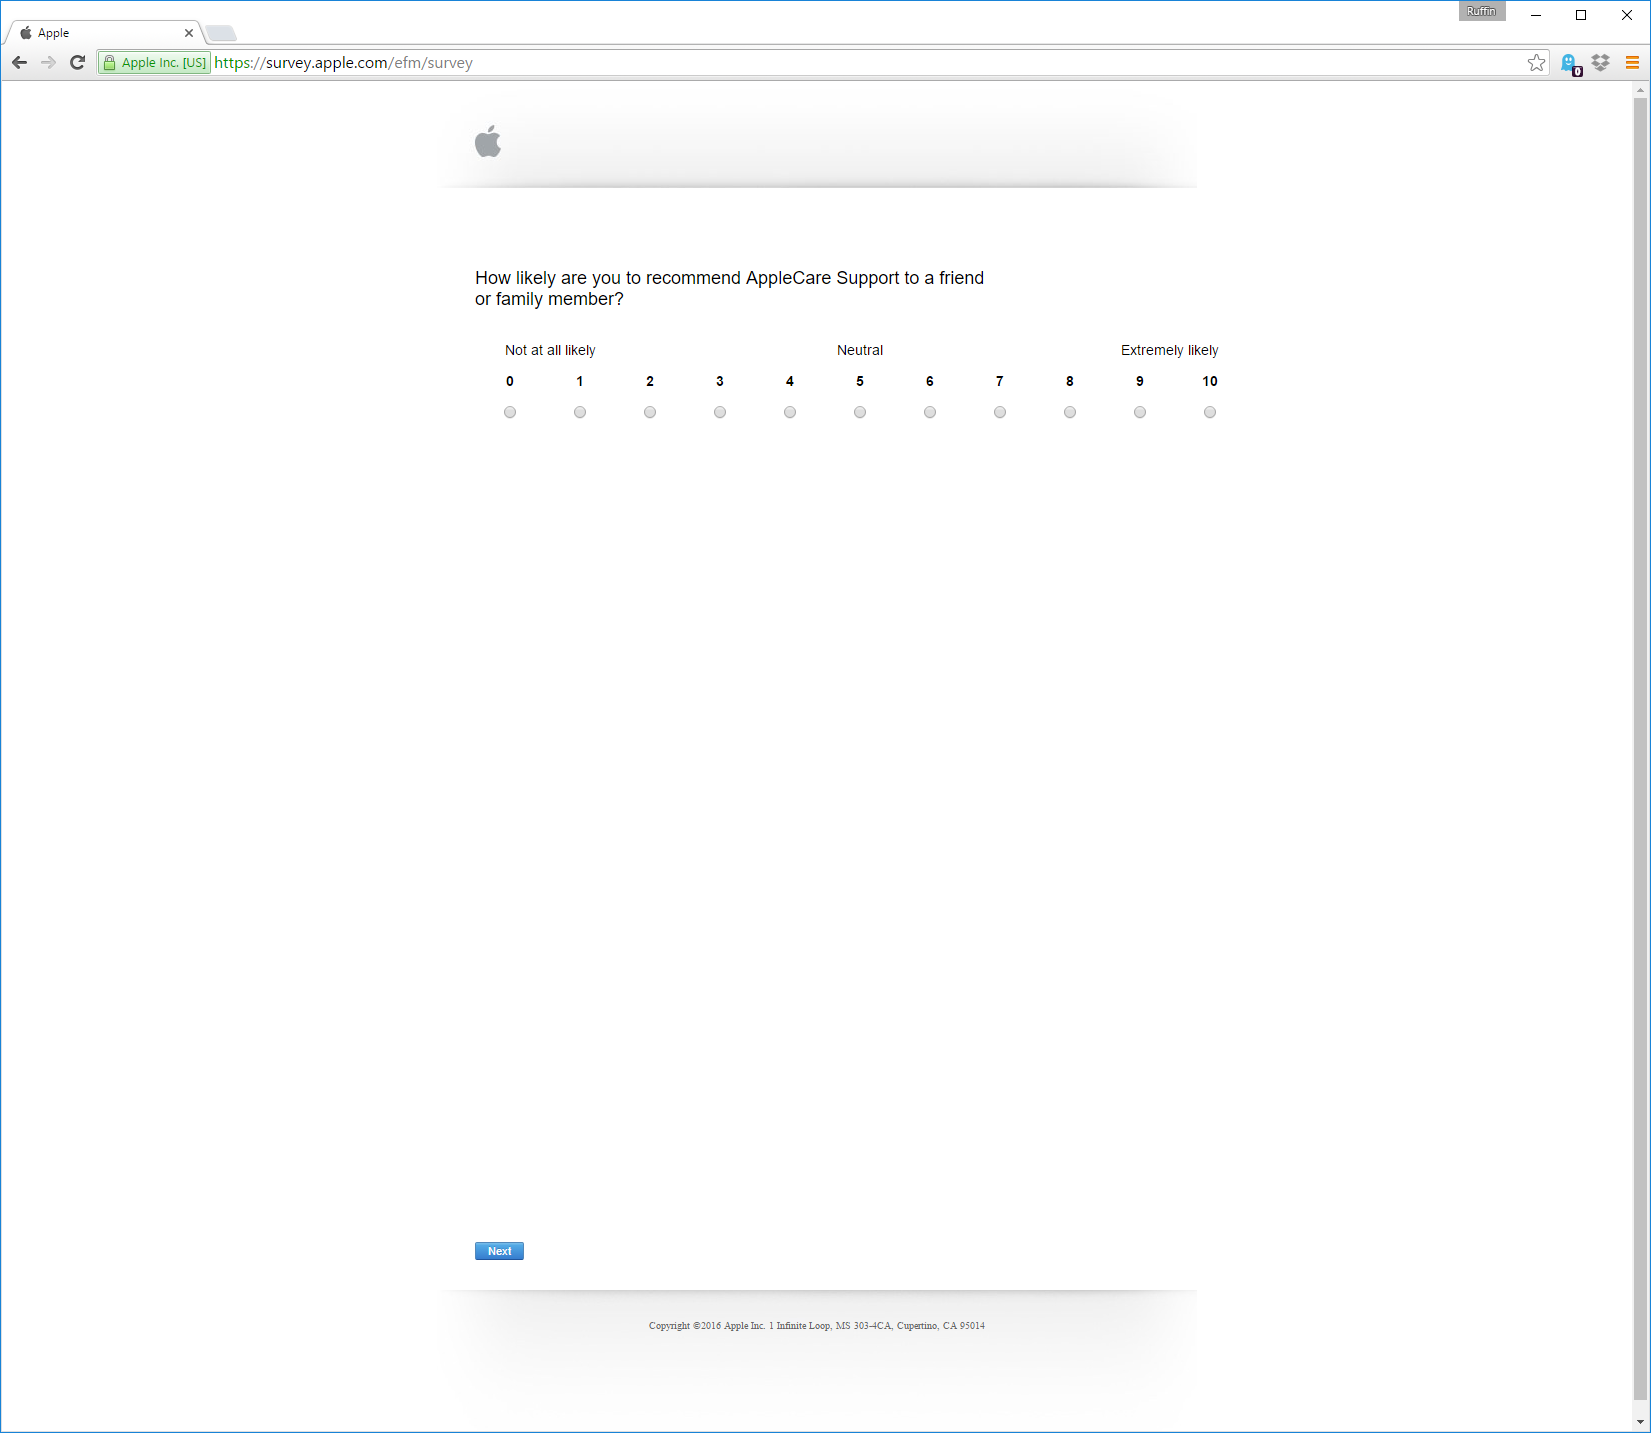 apple survey spacing is exceptionally spread out